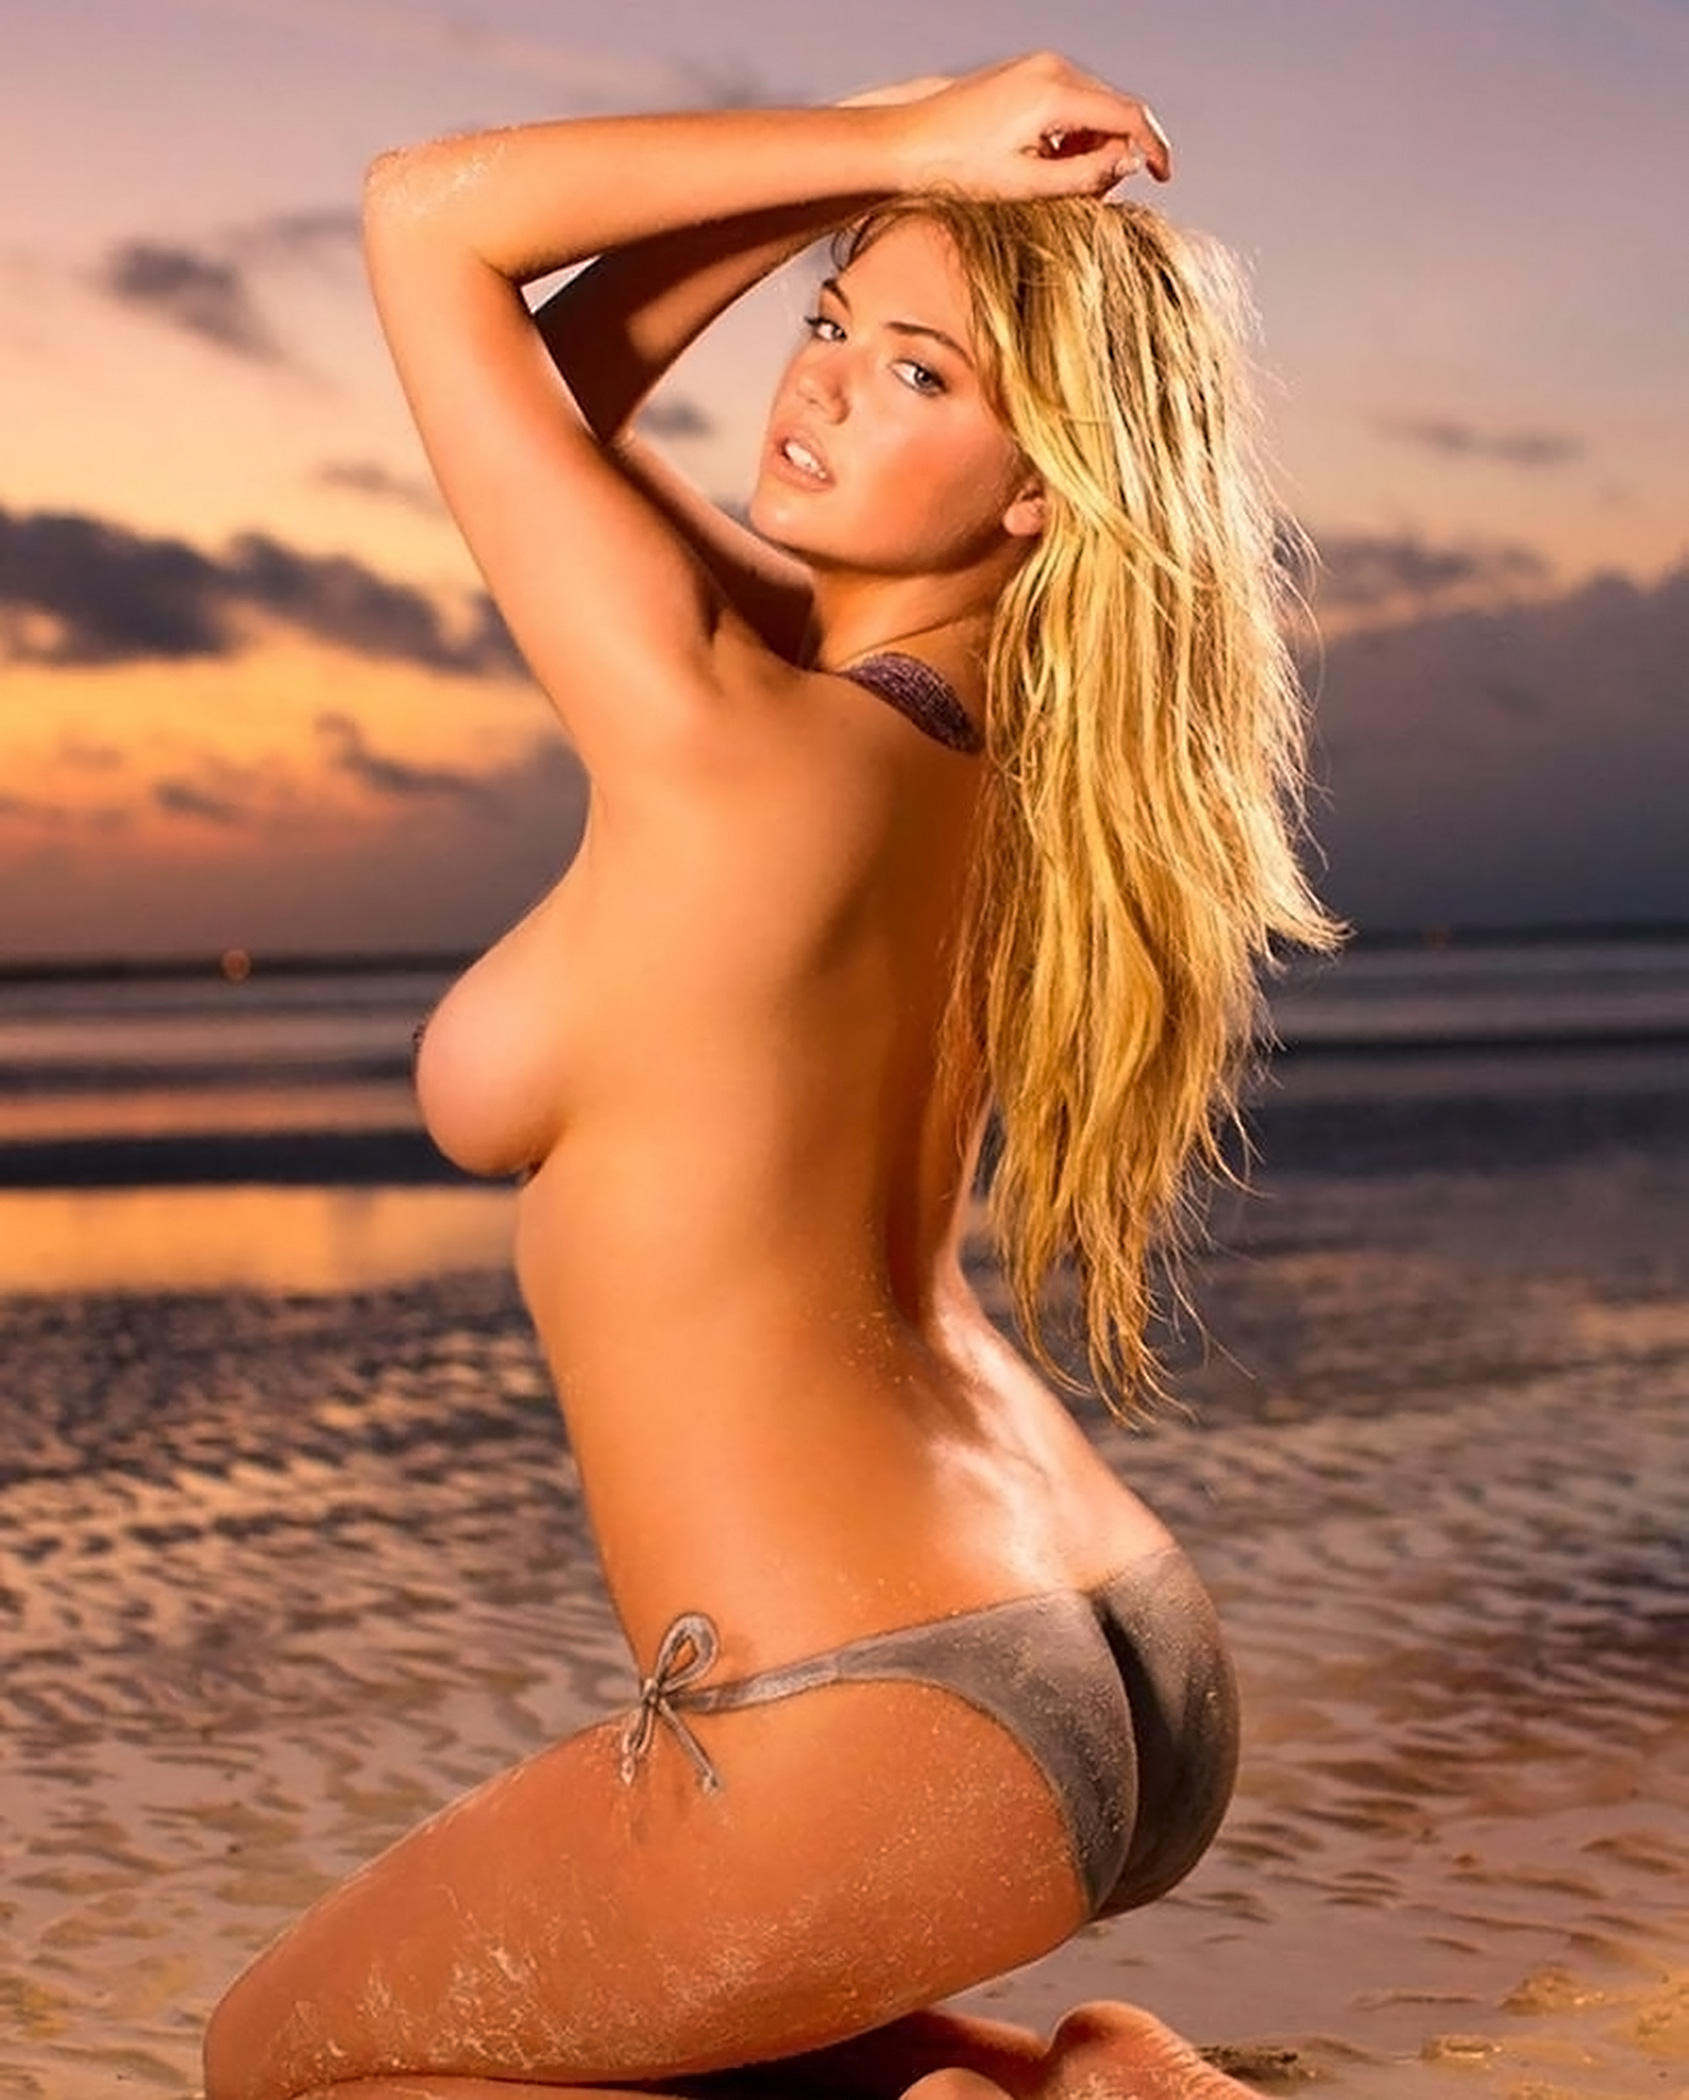 kate upton breast pictures